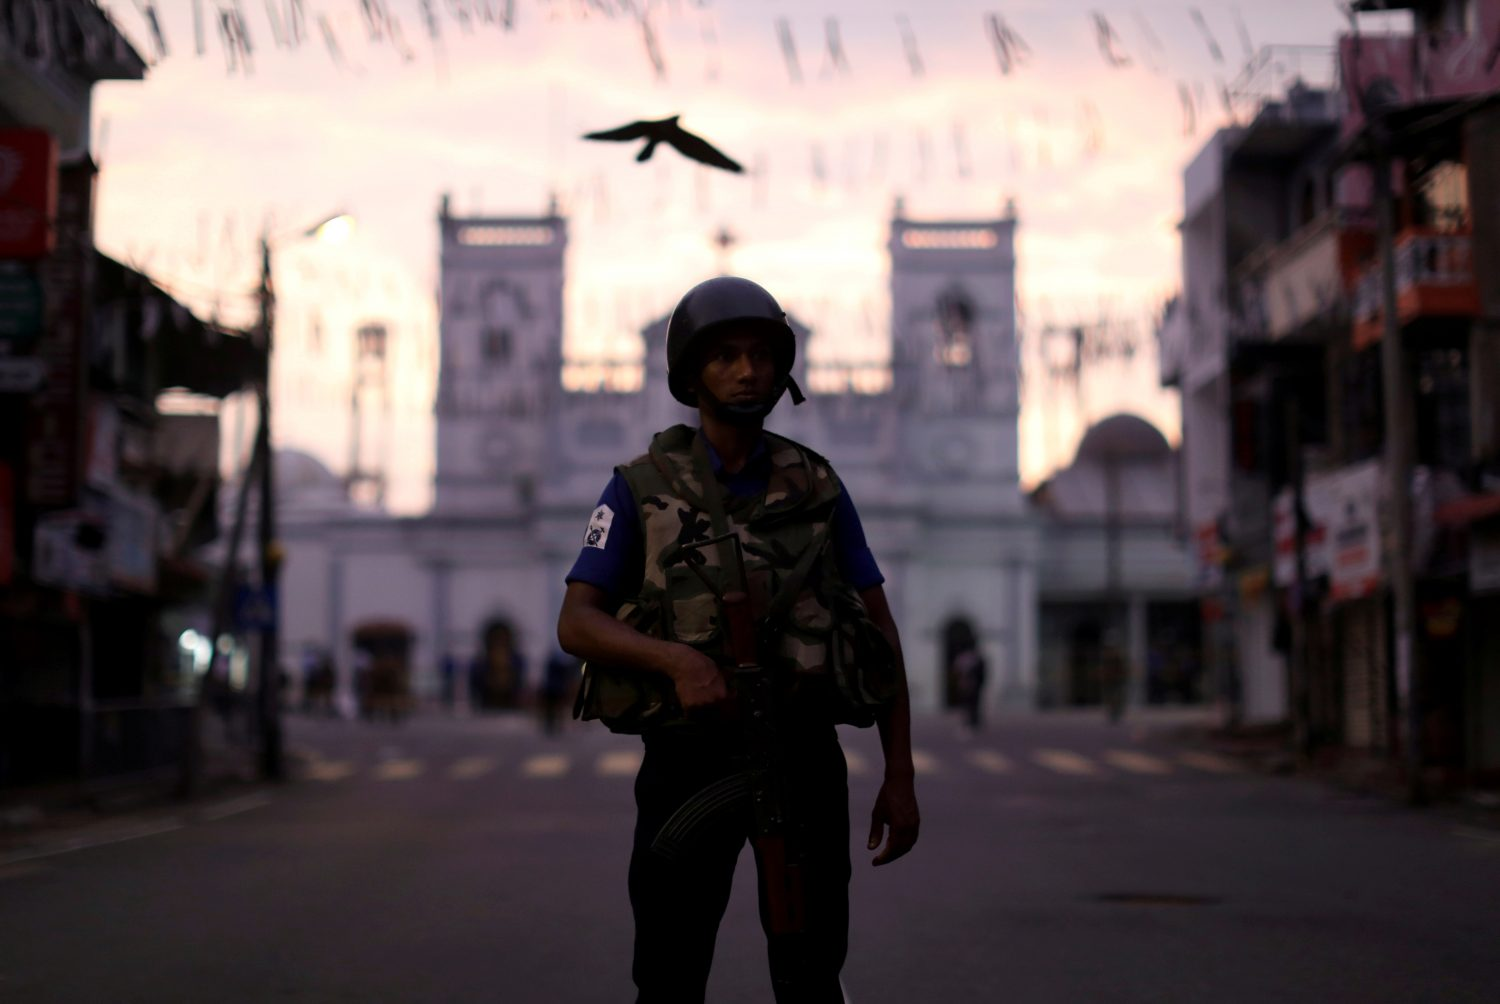 FILE PHOTO: A security officer stands guard outside St. Anthony's Shrine, days after a string of suicide bomb attacks on churches and luxury hotels across the island on Easter Sunday, in Colombo, Sri Lanka April 26, 2019. REUTERS/Athit Perawongmetha/File Photo